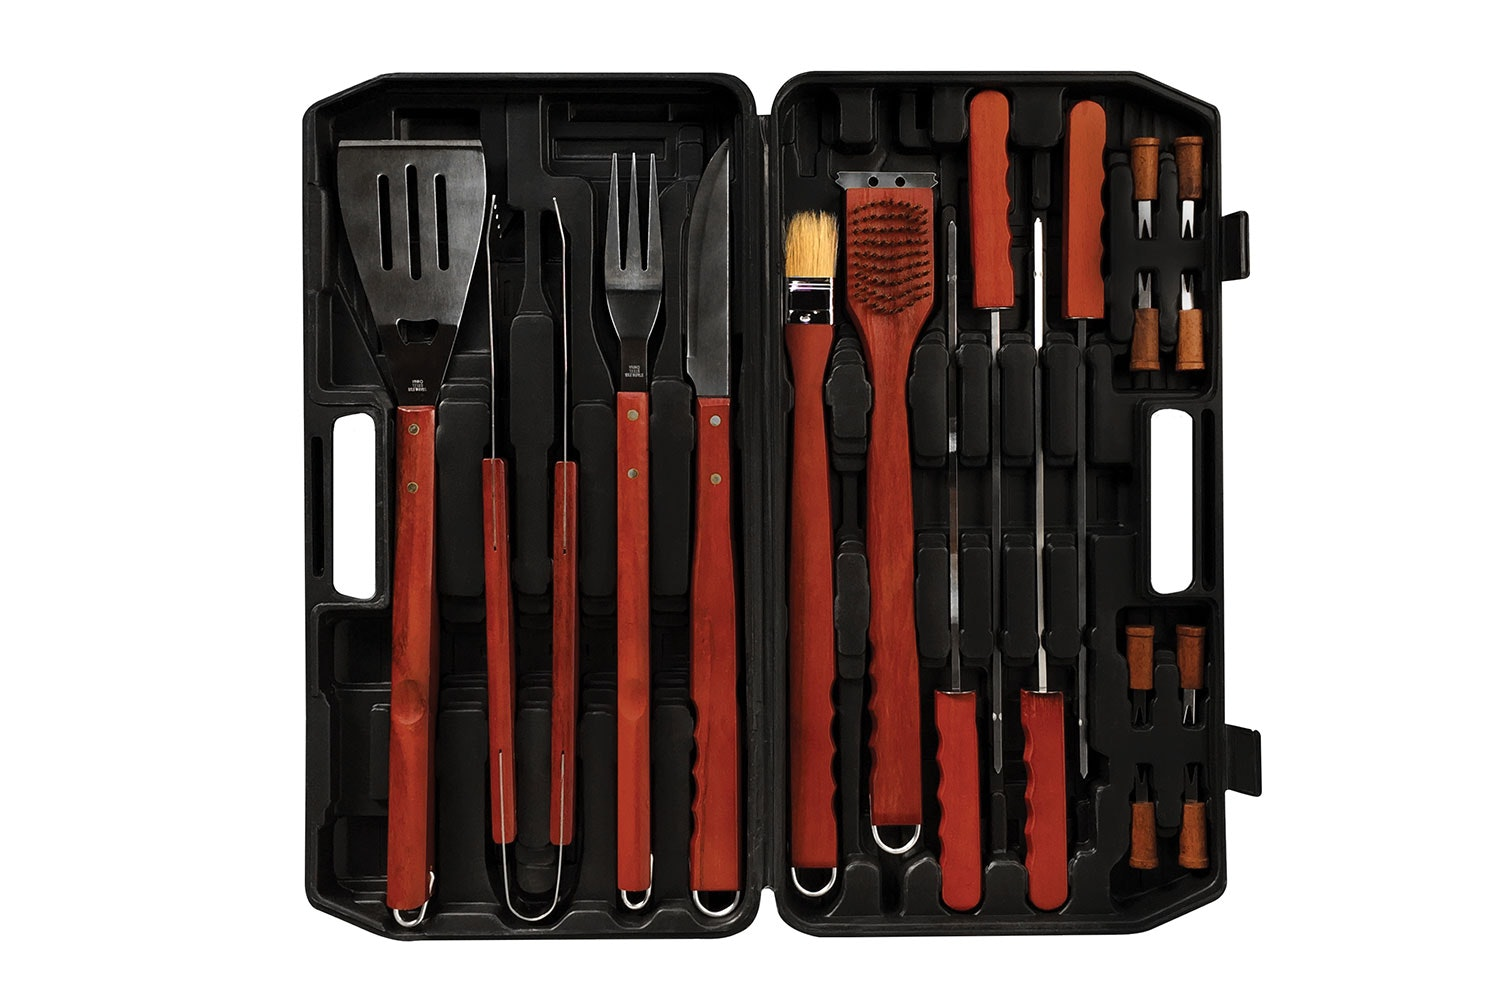 18 Piece Barbeque Tool Set by Montana